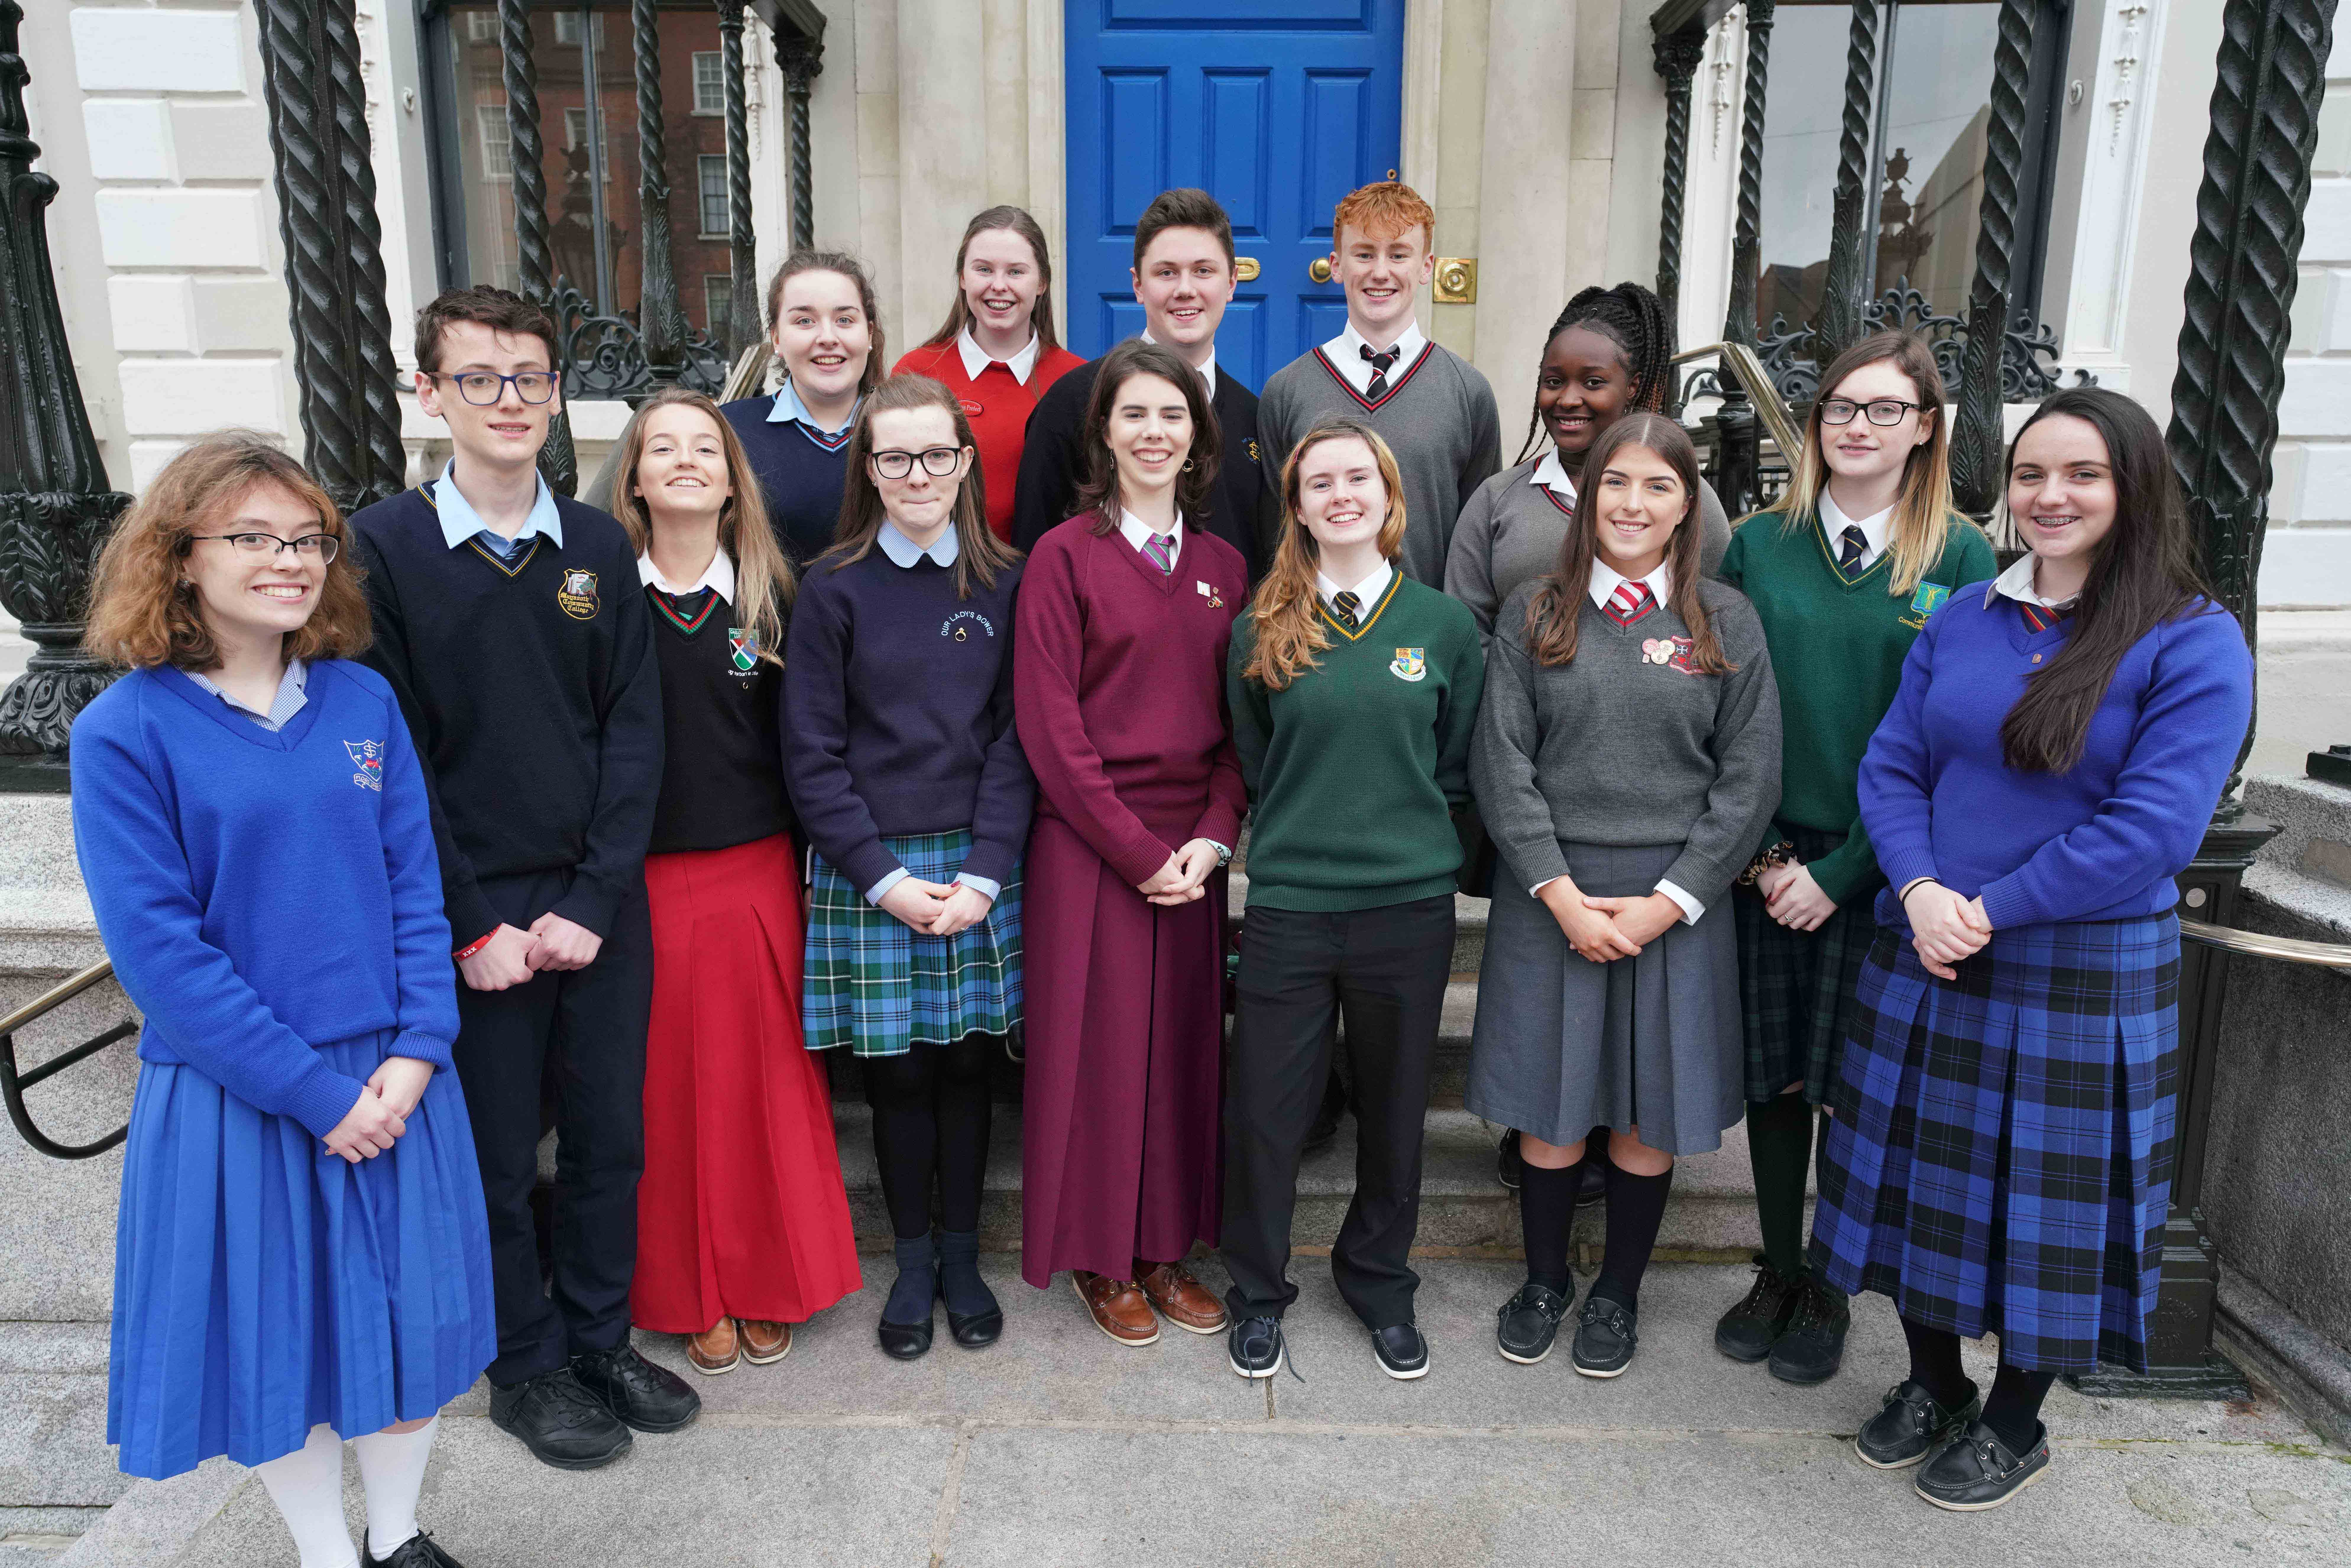 Members of the Oireachtas TED-Ed Club